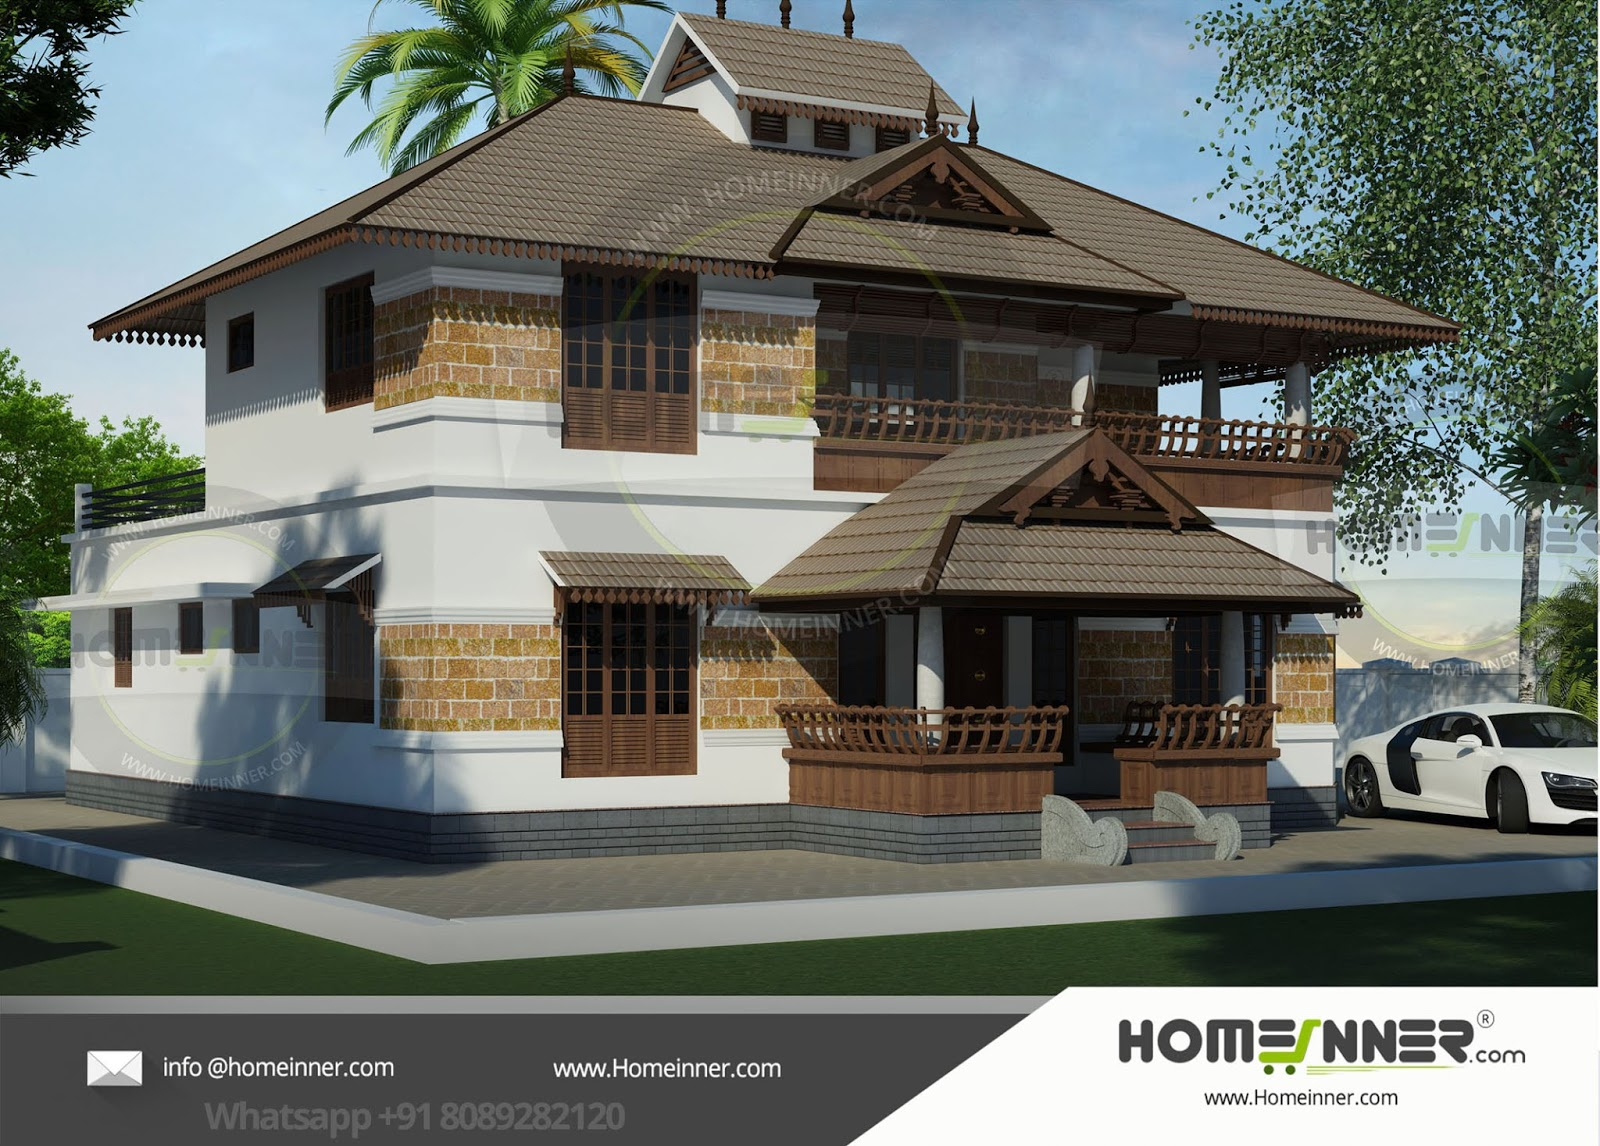 35 Lakh 5 BHK 2495 sq ft Pondicherry Villa